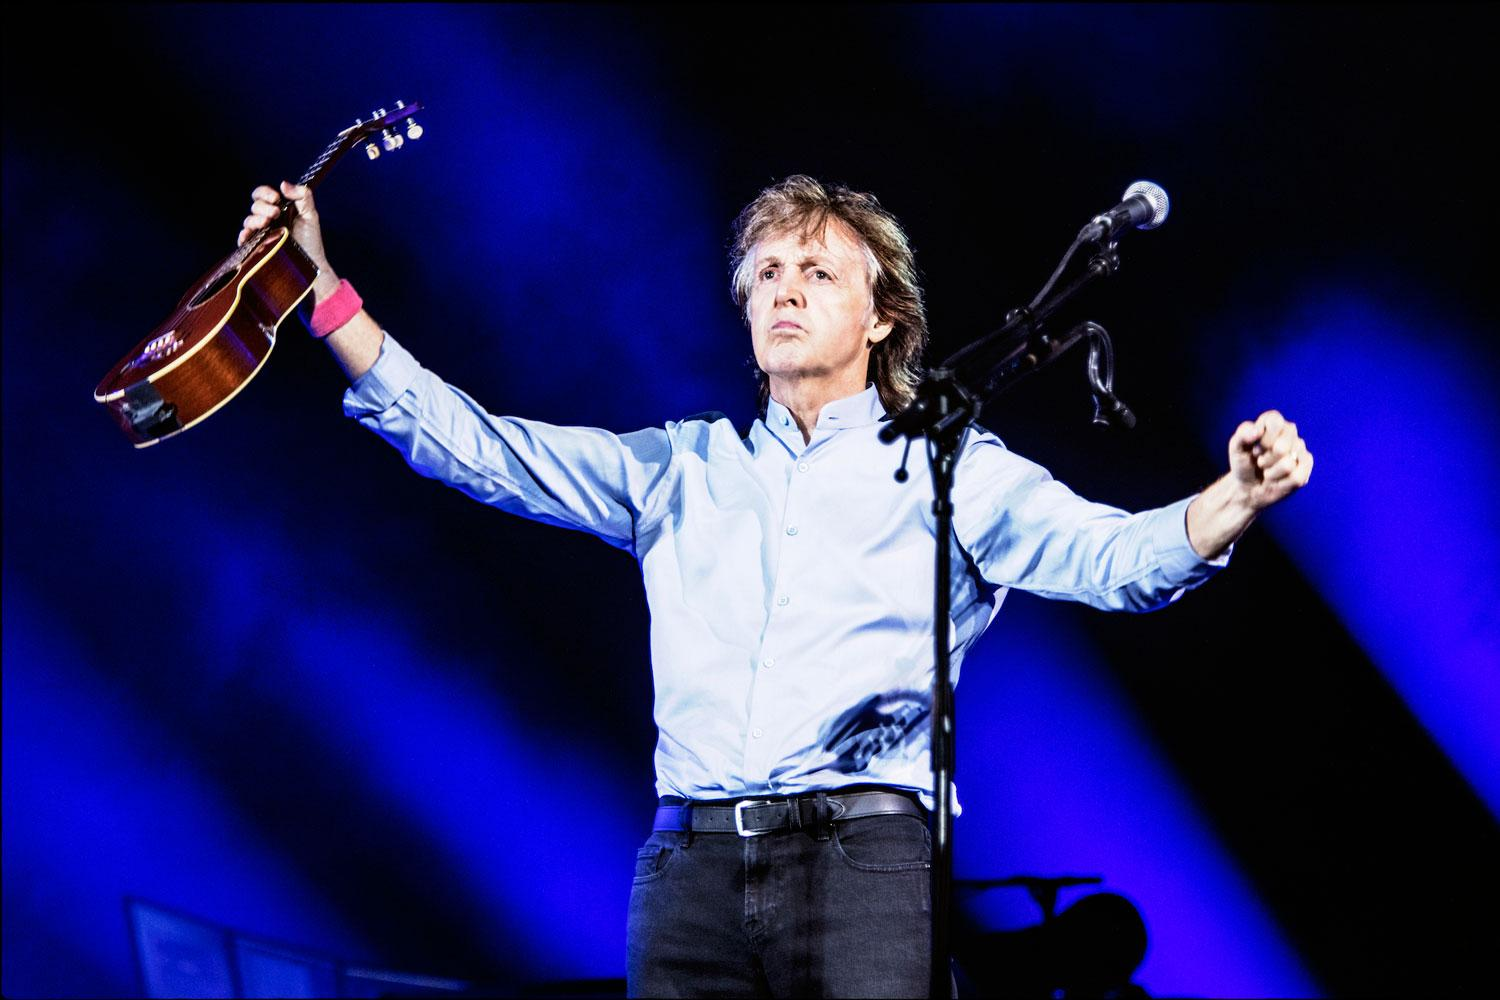 Paul McCartney volvería a Chile en marzo para tocar en el Estadio Nacional